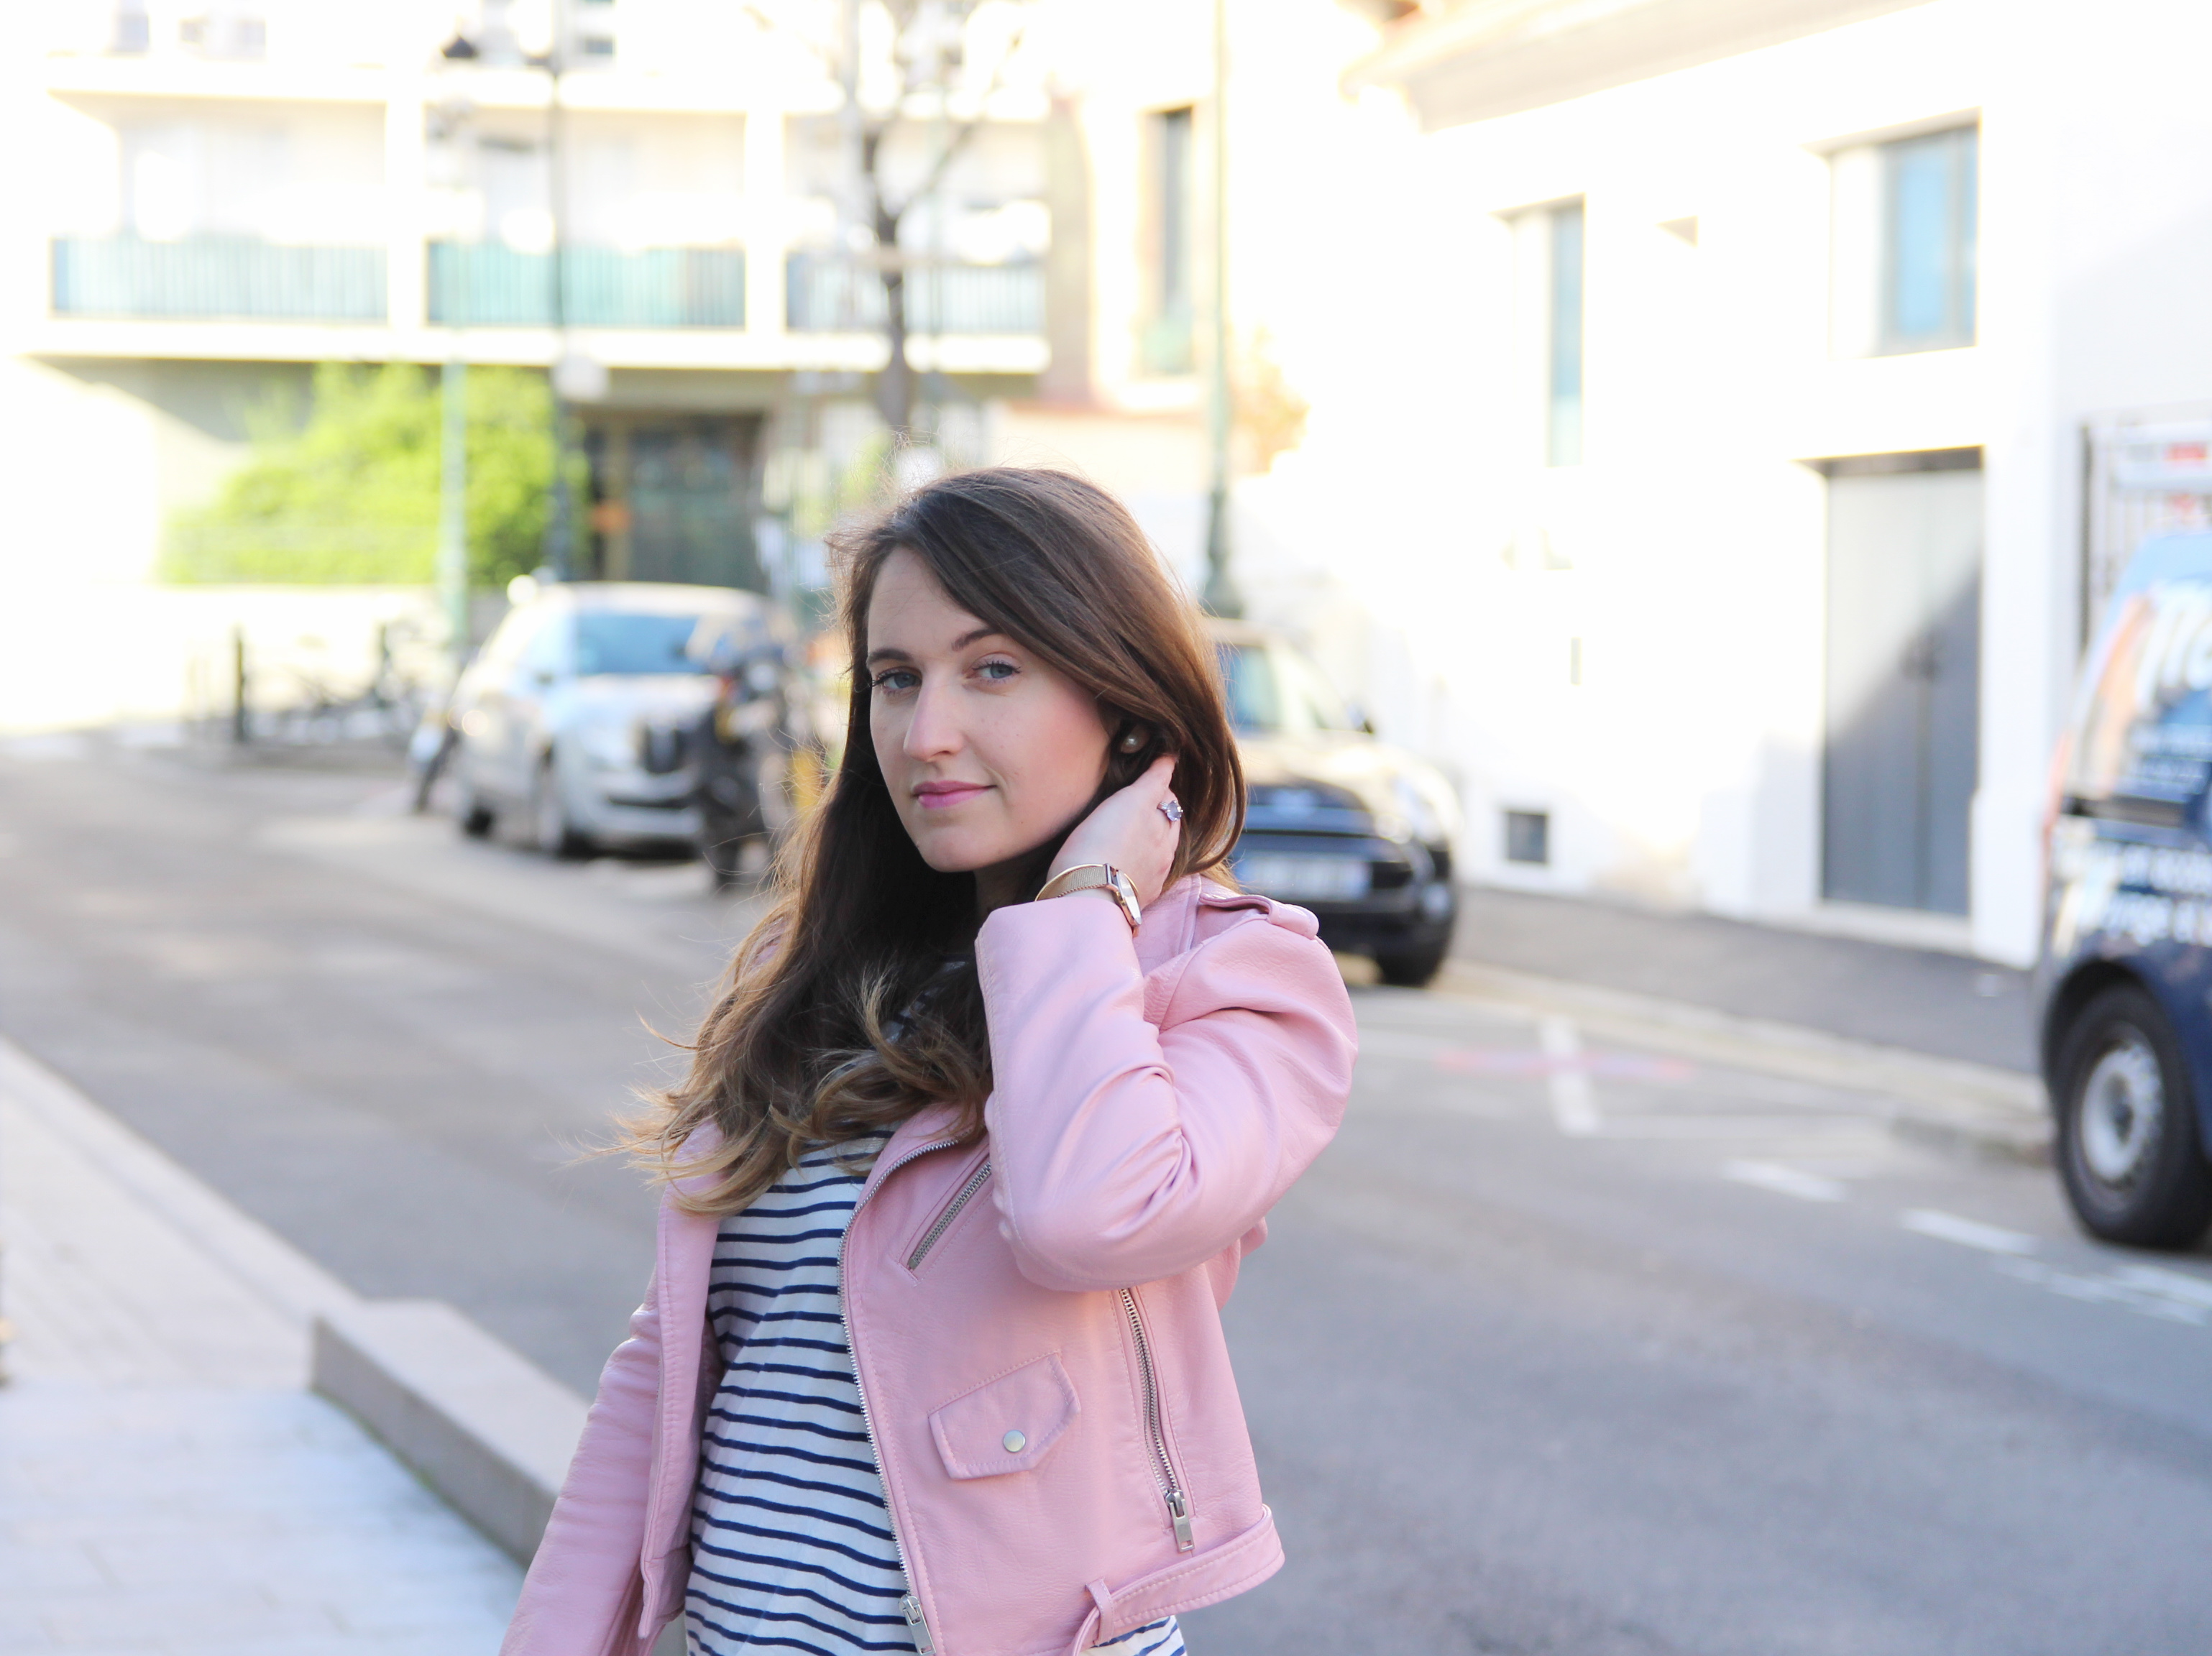 perfecto-rose-zara-marinniere-denim-influencer-fashion-ottd-look-seralynepointcom-paris-IMG_7013